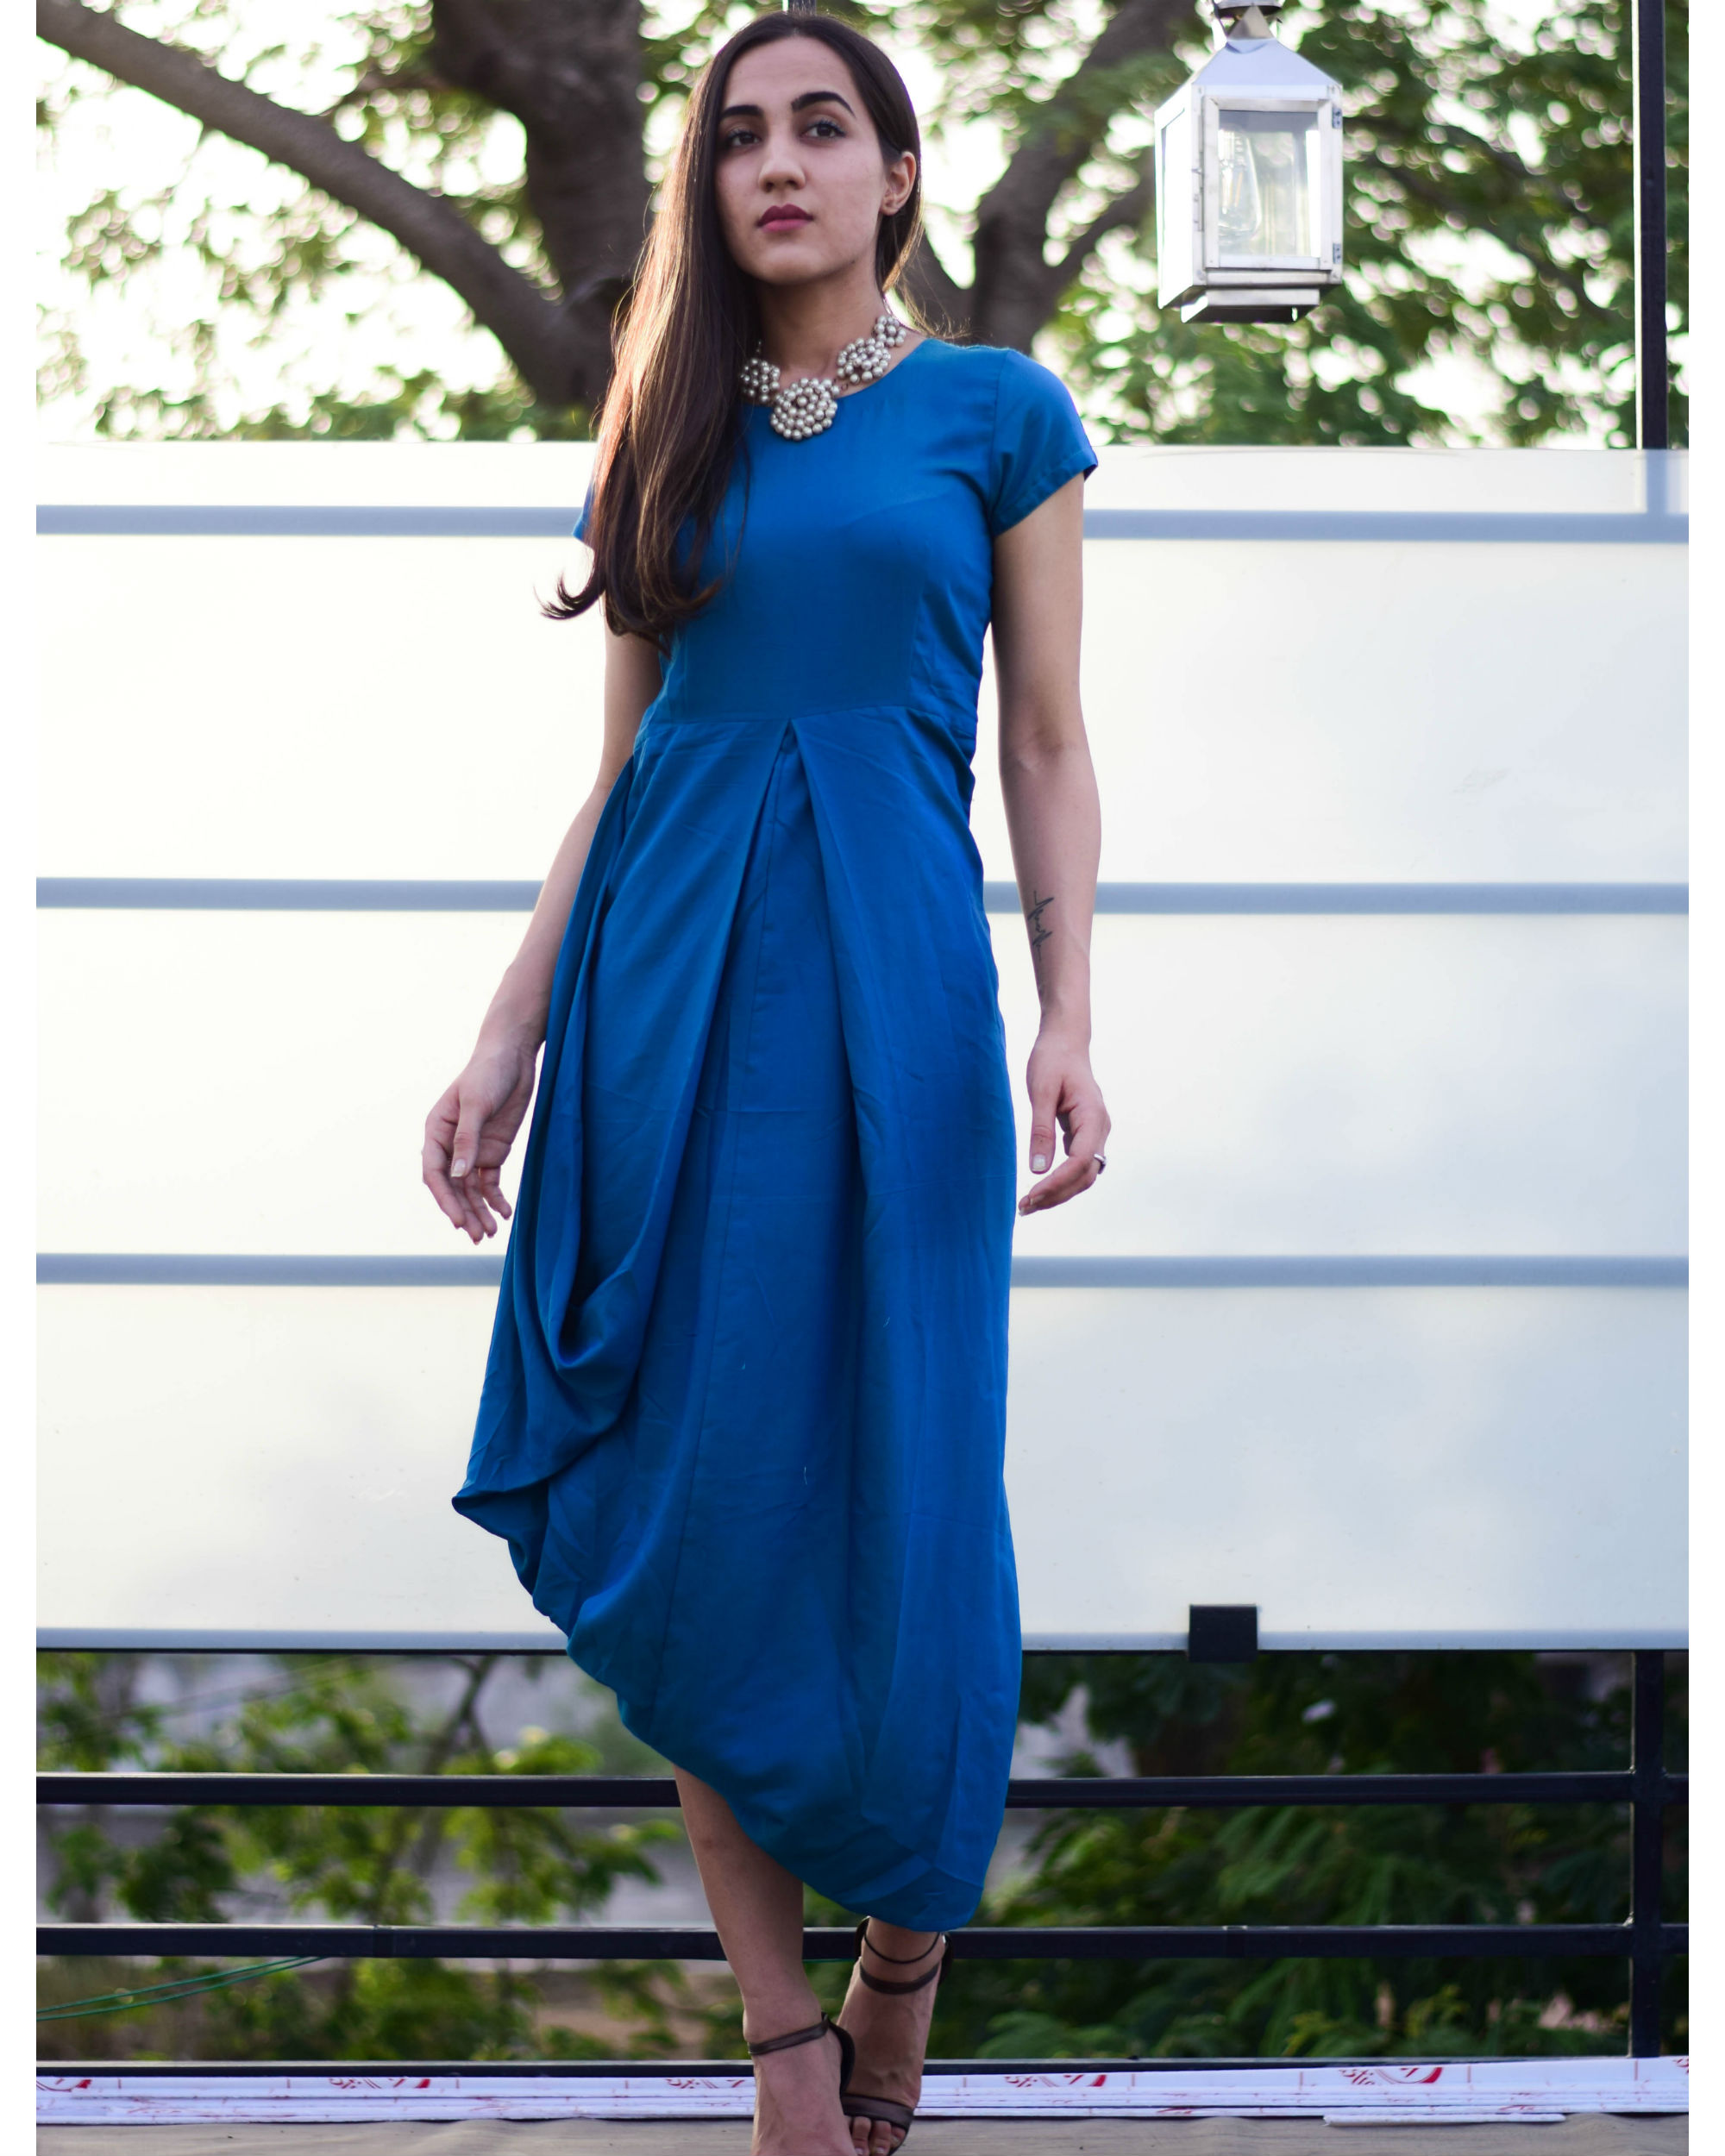 Azura cowl dress